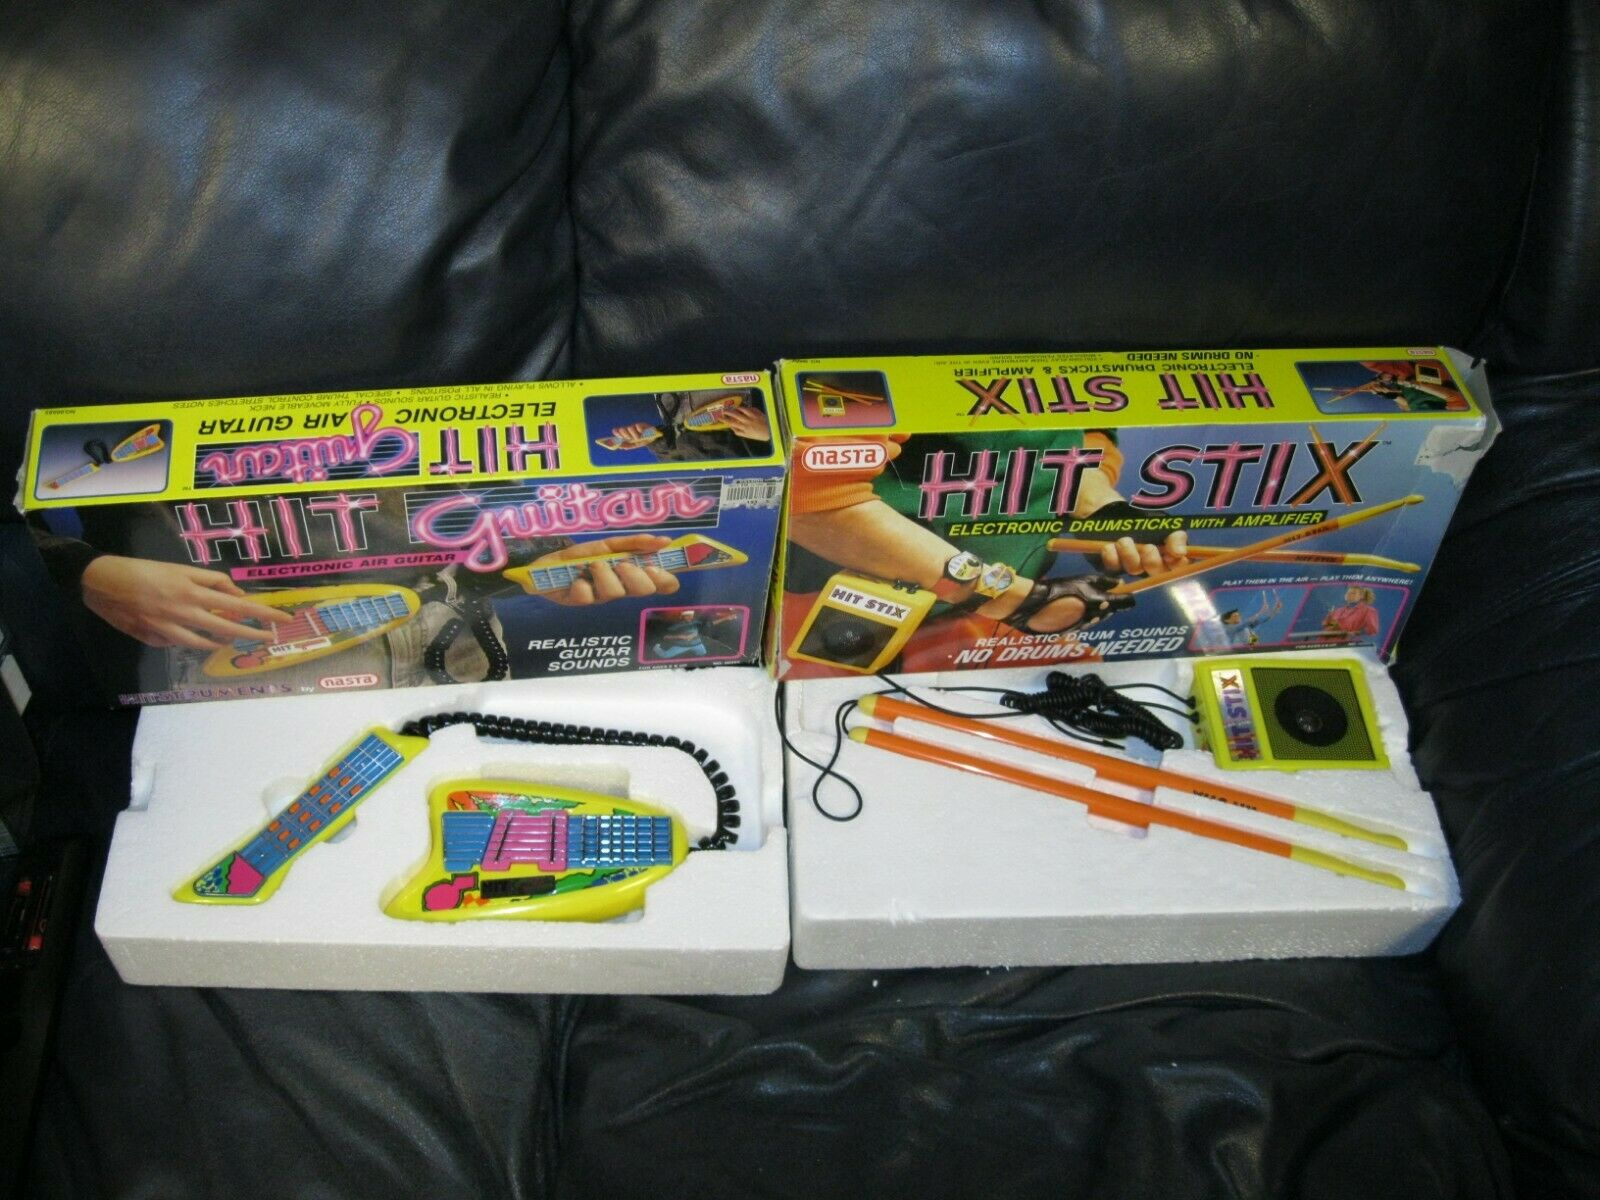 Hit Stix and Hit Guitar With Original Box By NASTA